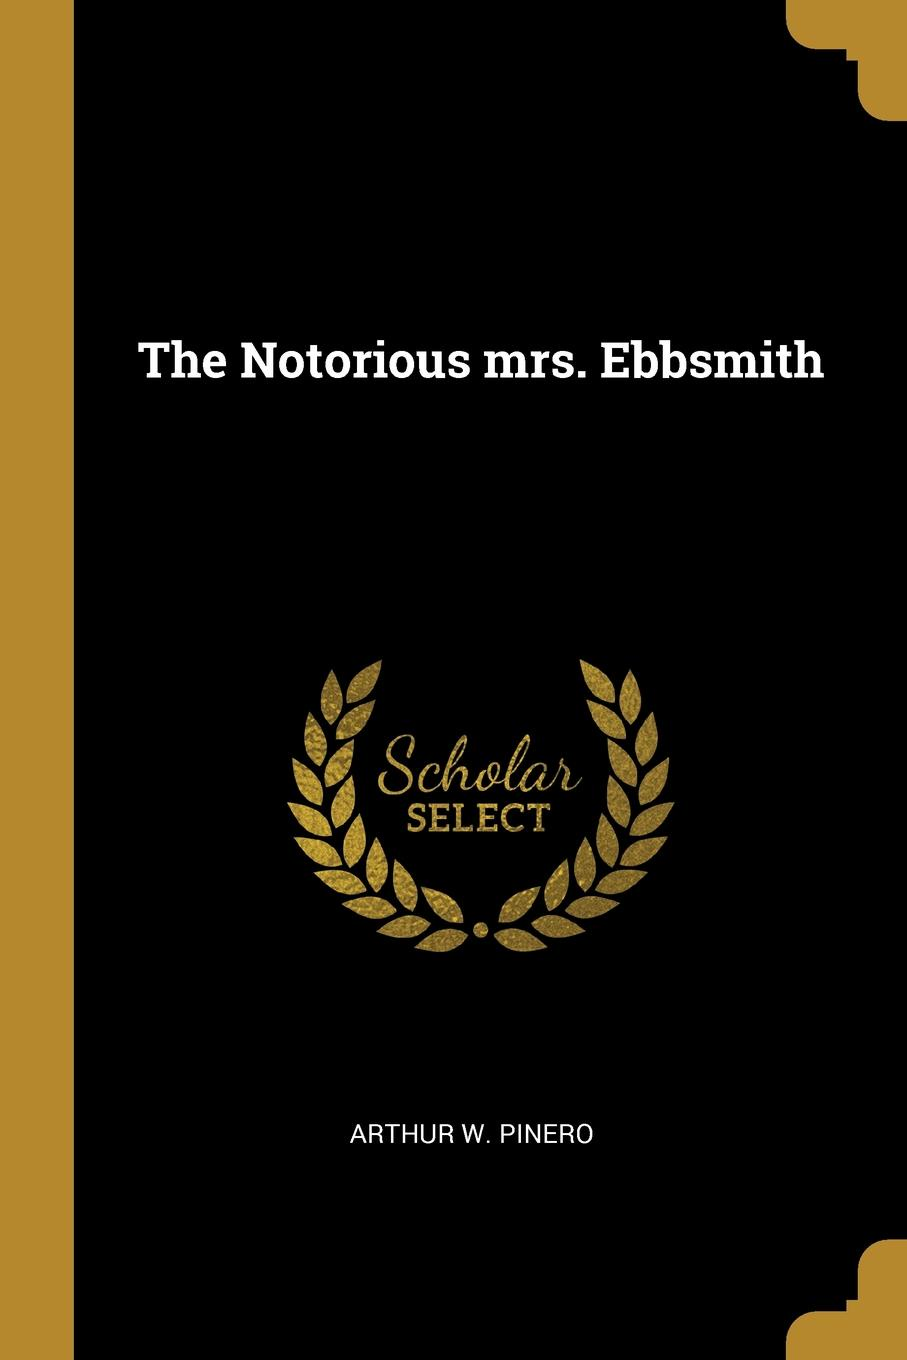 Arthur W. Pinero. The Notorious mrs. Ebbsmith